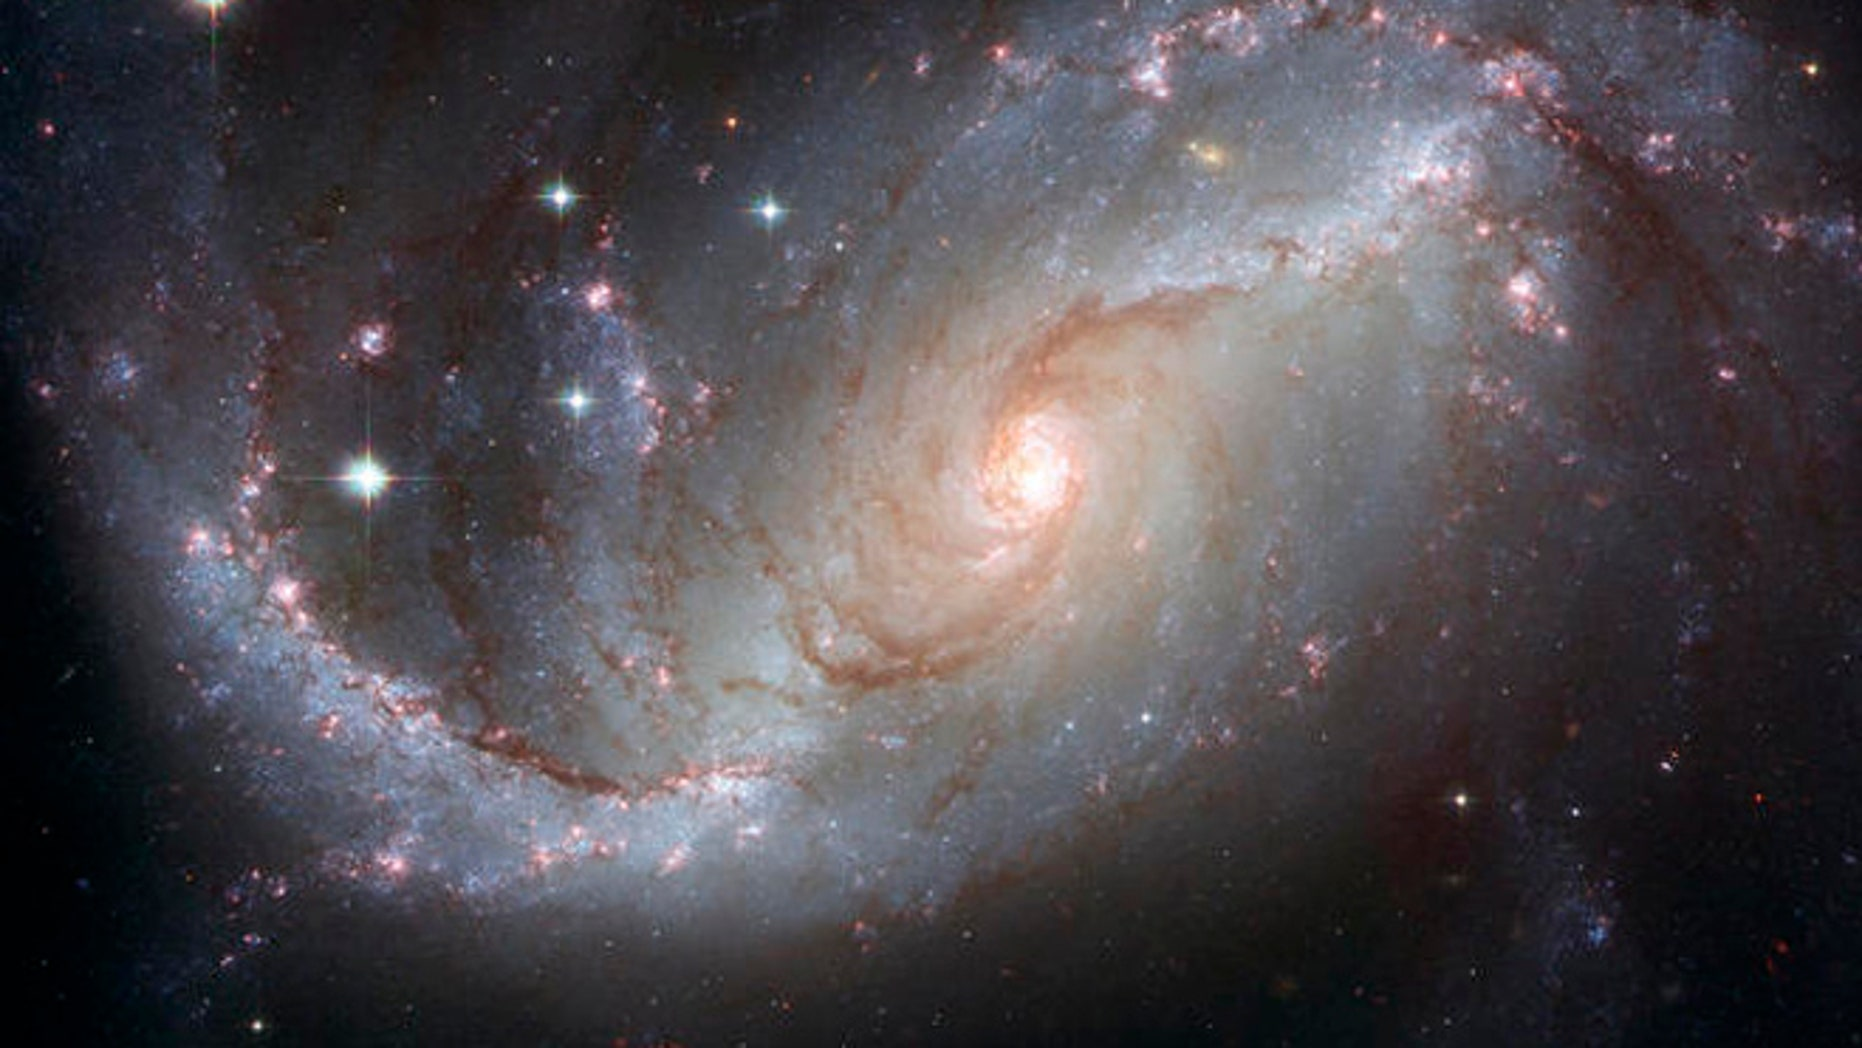 This photo supplied by NASA and the European Space Agency Tuesday, April 3, 2007, is a Hubble Space Telescope view of the barred spiral galaxy NGC 1672, showing up clusters of hot young blue stars along its spiral arms, and clouds of hydrogen gas glowing in red. Delicate curtains of dust partially obscure and redden the light of the stars behind them. NGC 1672s symmetric look is emphasized by the four principal arms, edged by eye-catching dust lanes that extend out from the center. The galaxy, visible from the Southern Hemisphere, is seen almost face on and shows regions of intense star formation. The greatest concentrations of star formation are found in the so-called starburst regions near the ends of the galaxys strong galactic bar. (AP Photo/NASA-ESA) Credit: NASA, ESA